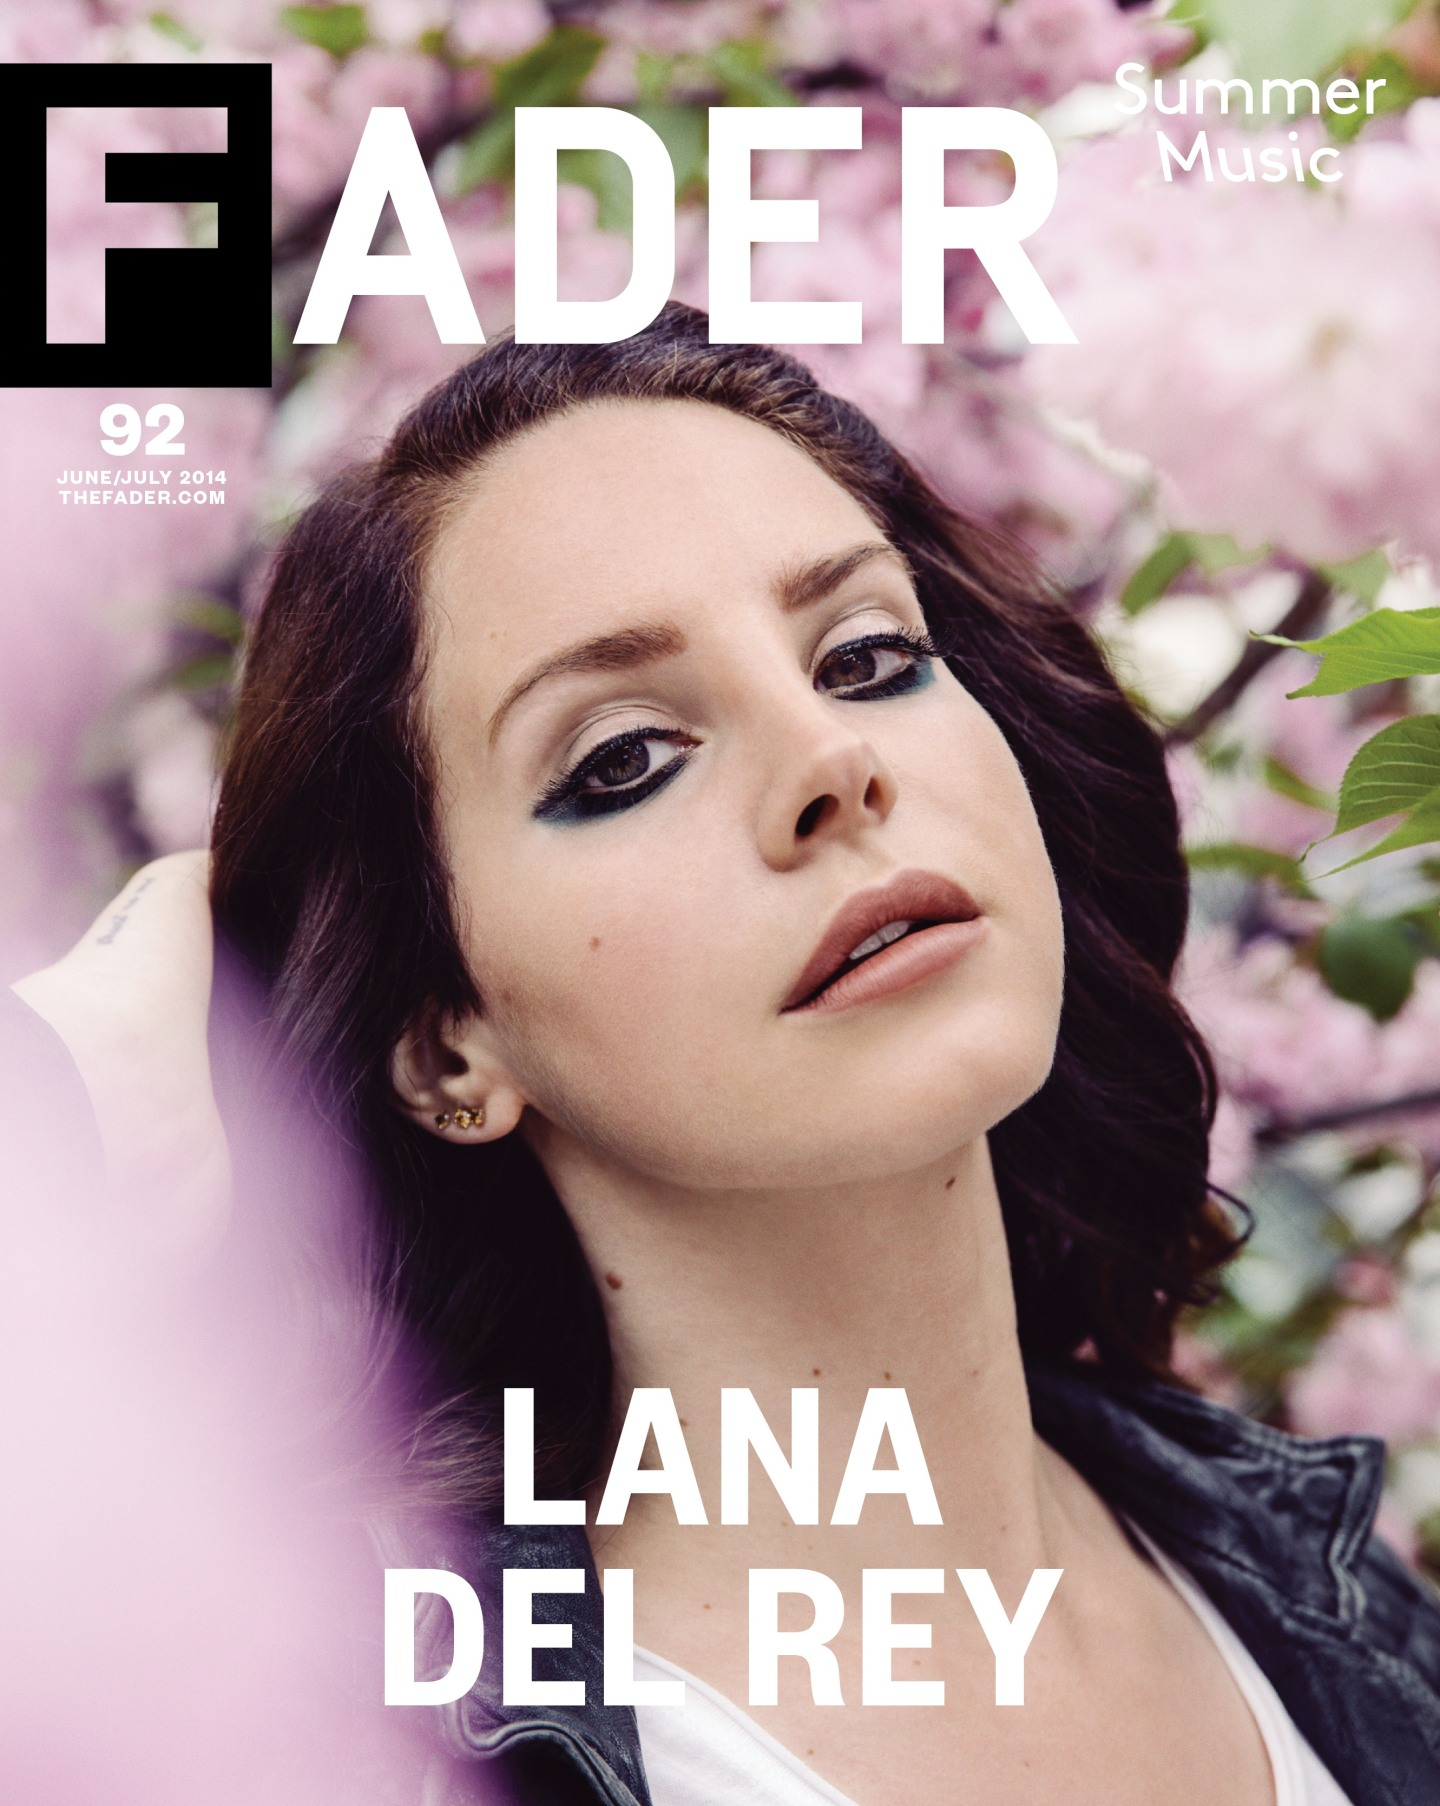 Lana Del Rey - The FADER cover